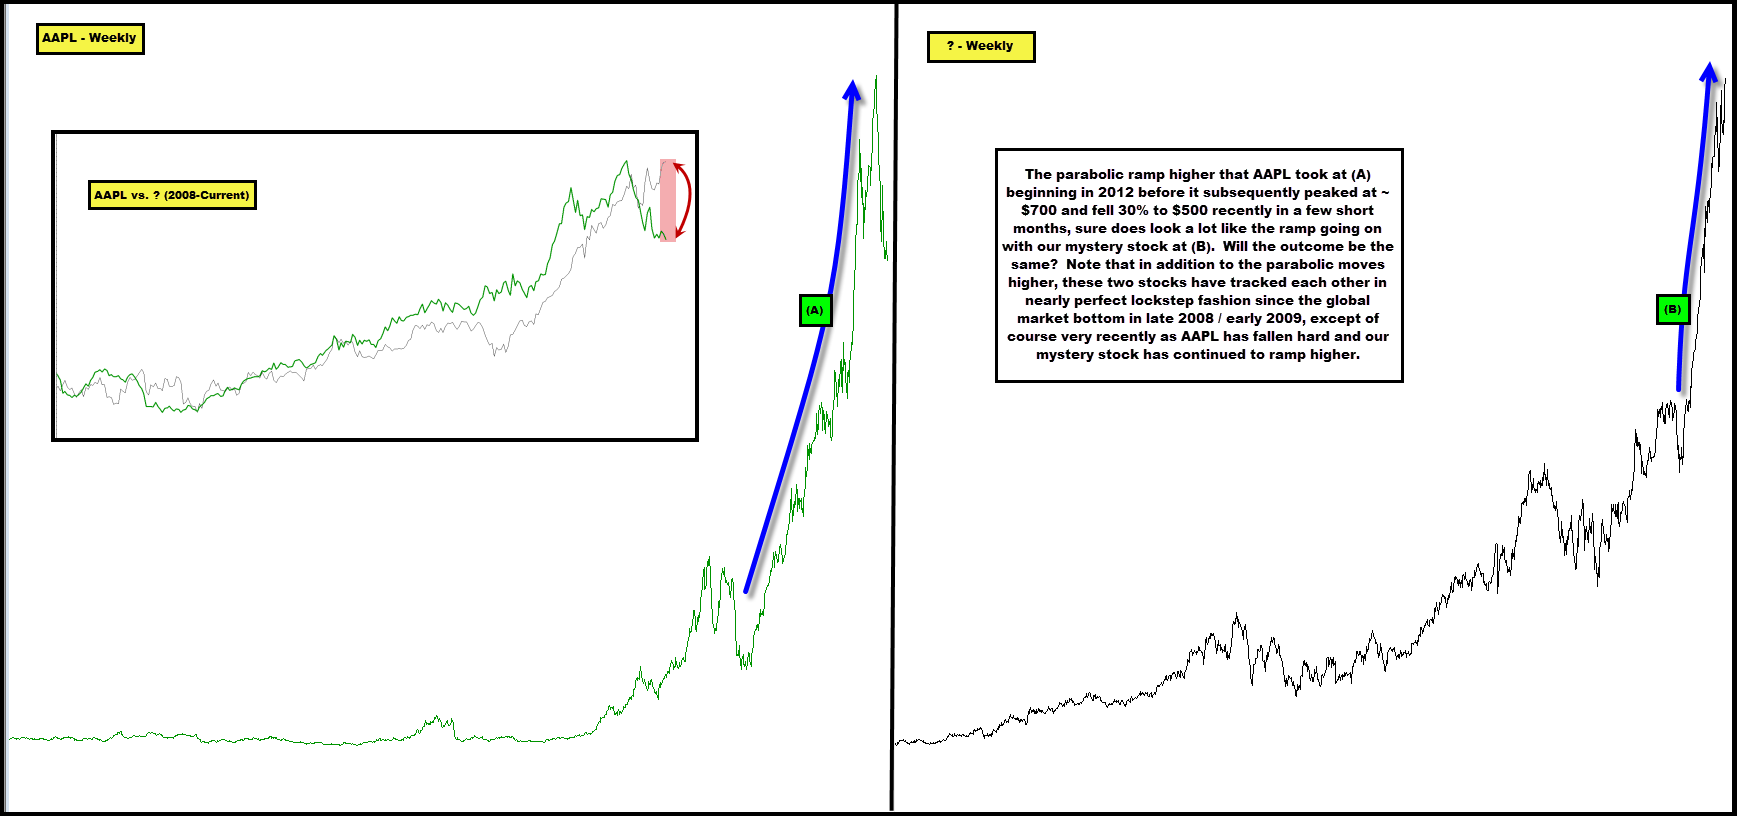 2013-01-17 AAPL Bubble vs. Unknown Bubble - Weekly